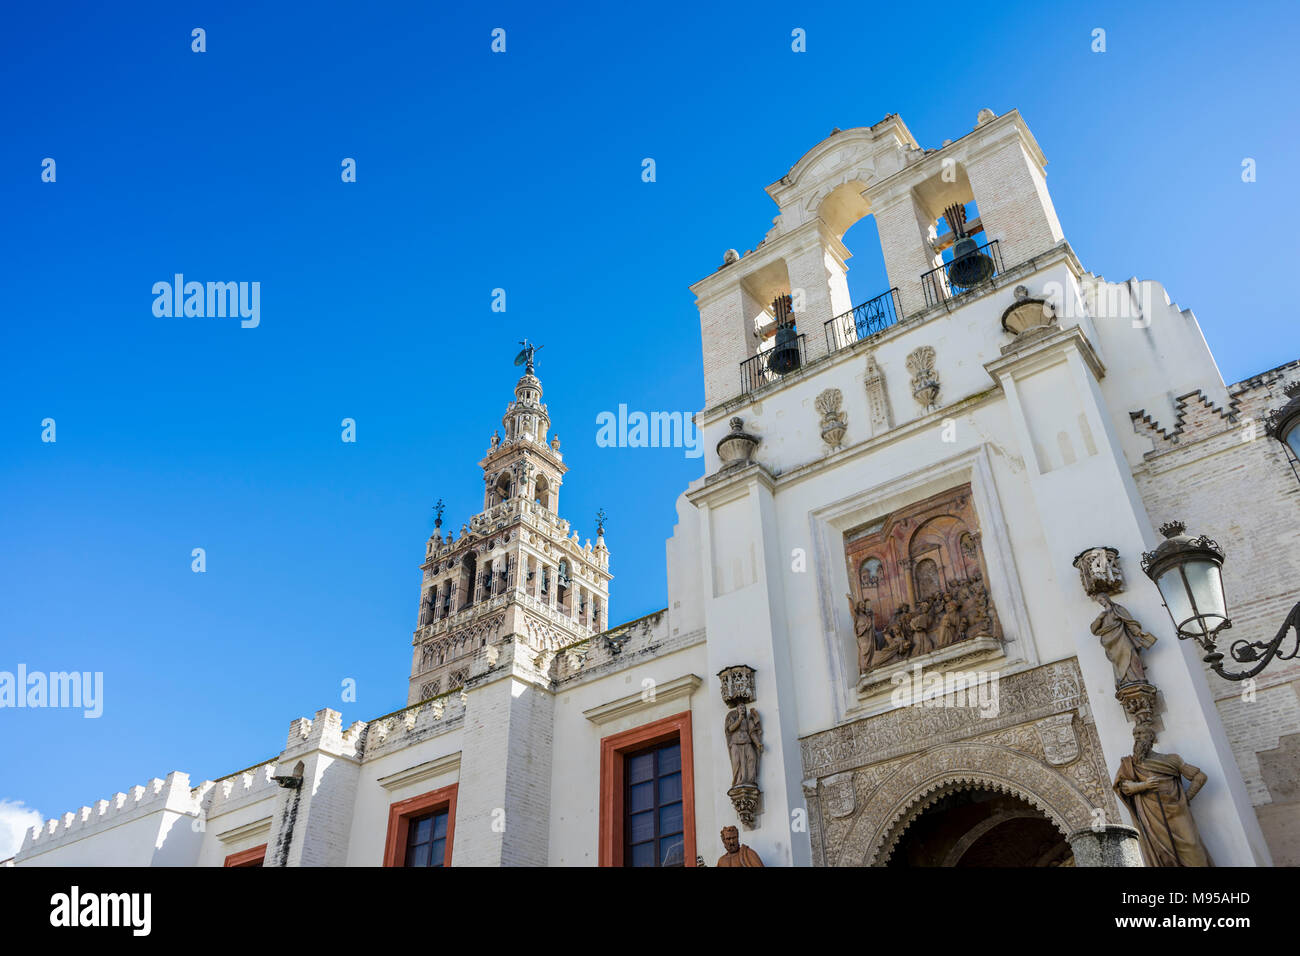 Door of Forgiveness (Puerta del Perdón) with the Giralda clock tower of Seville Cathedral in the background taken in 2018 in Seville, Andalusia, Spain - Stock Image